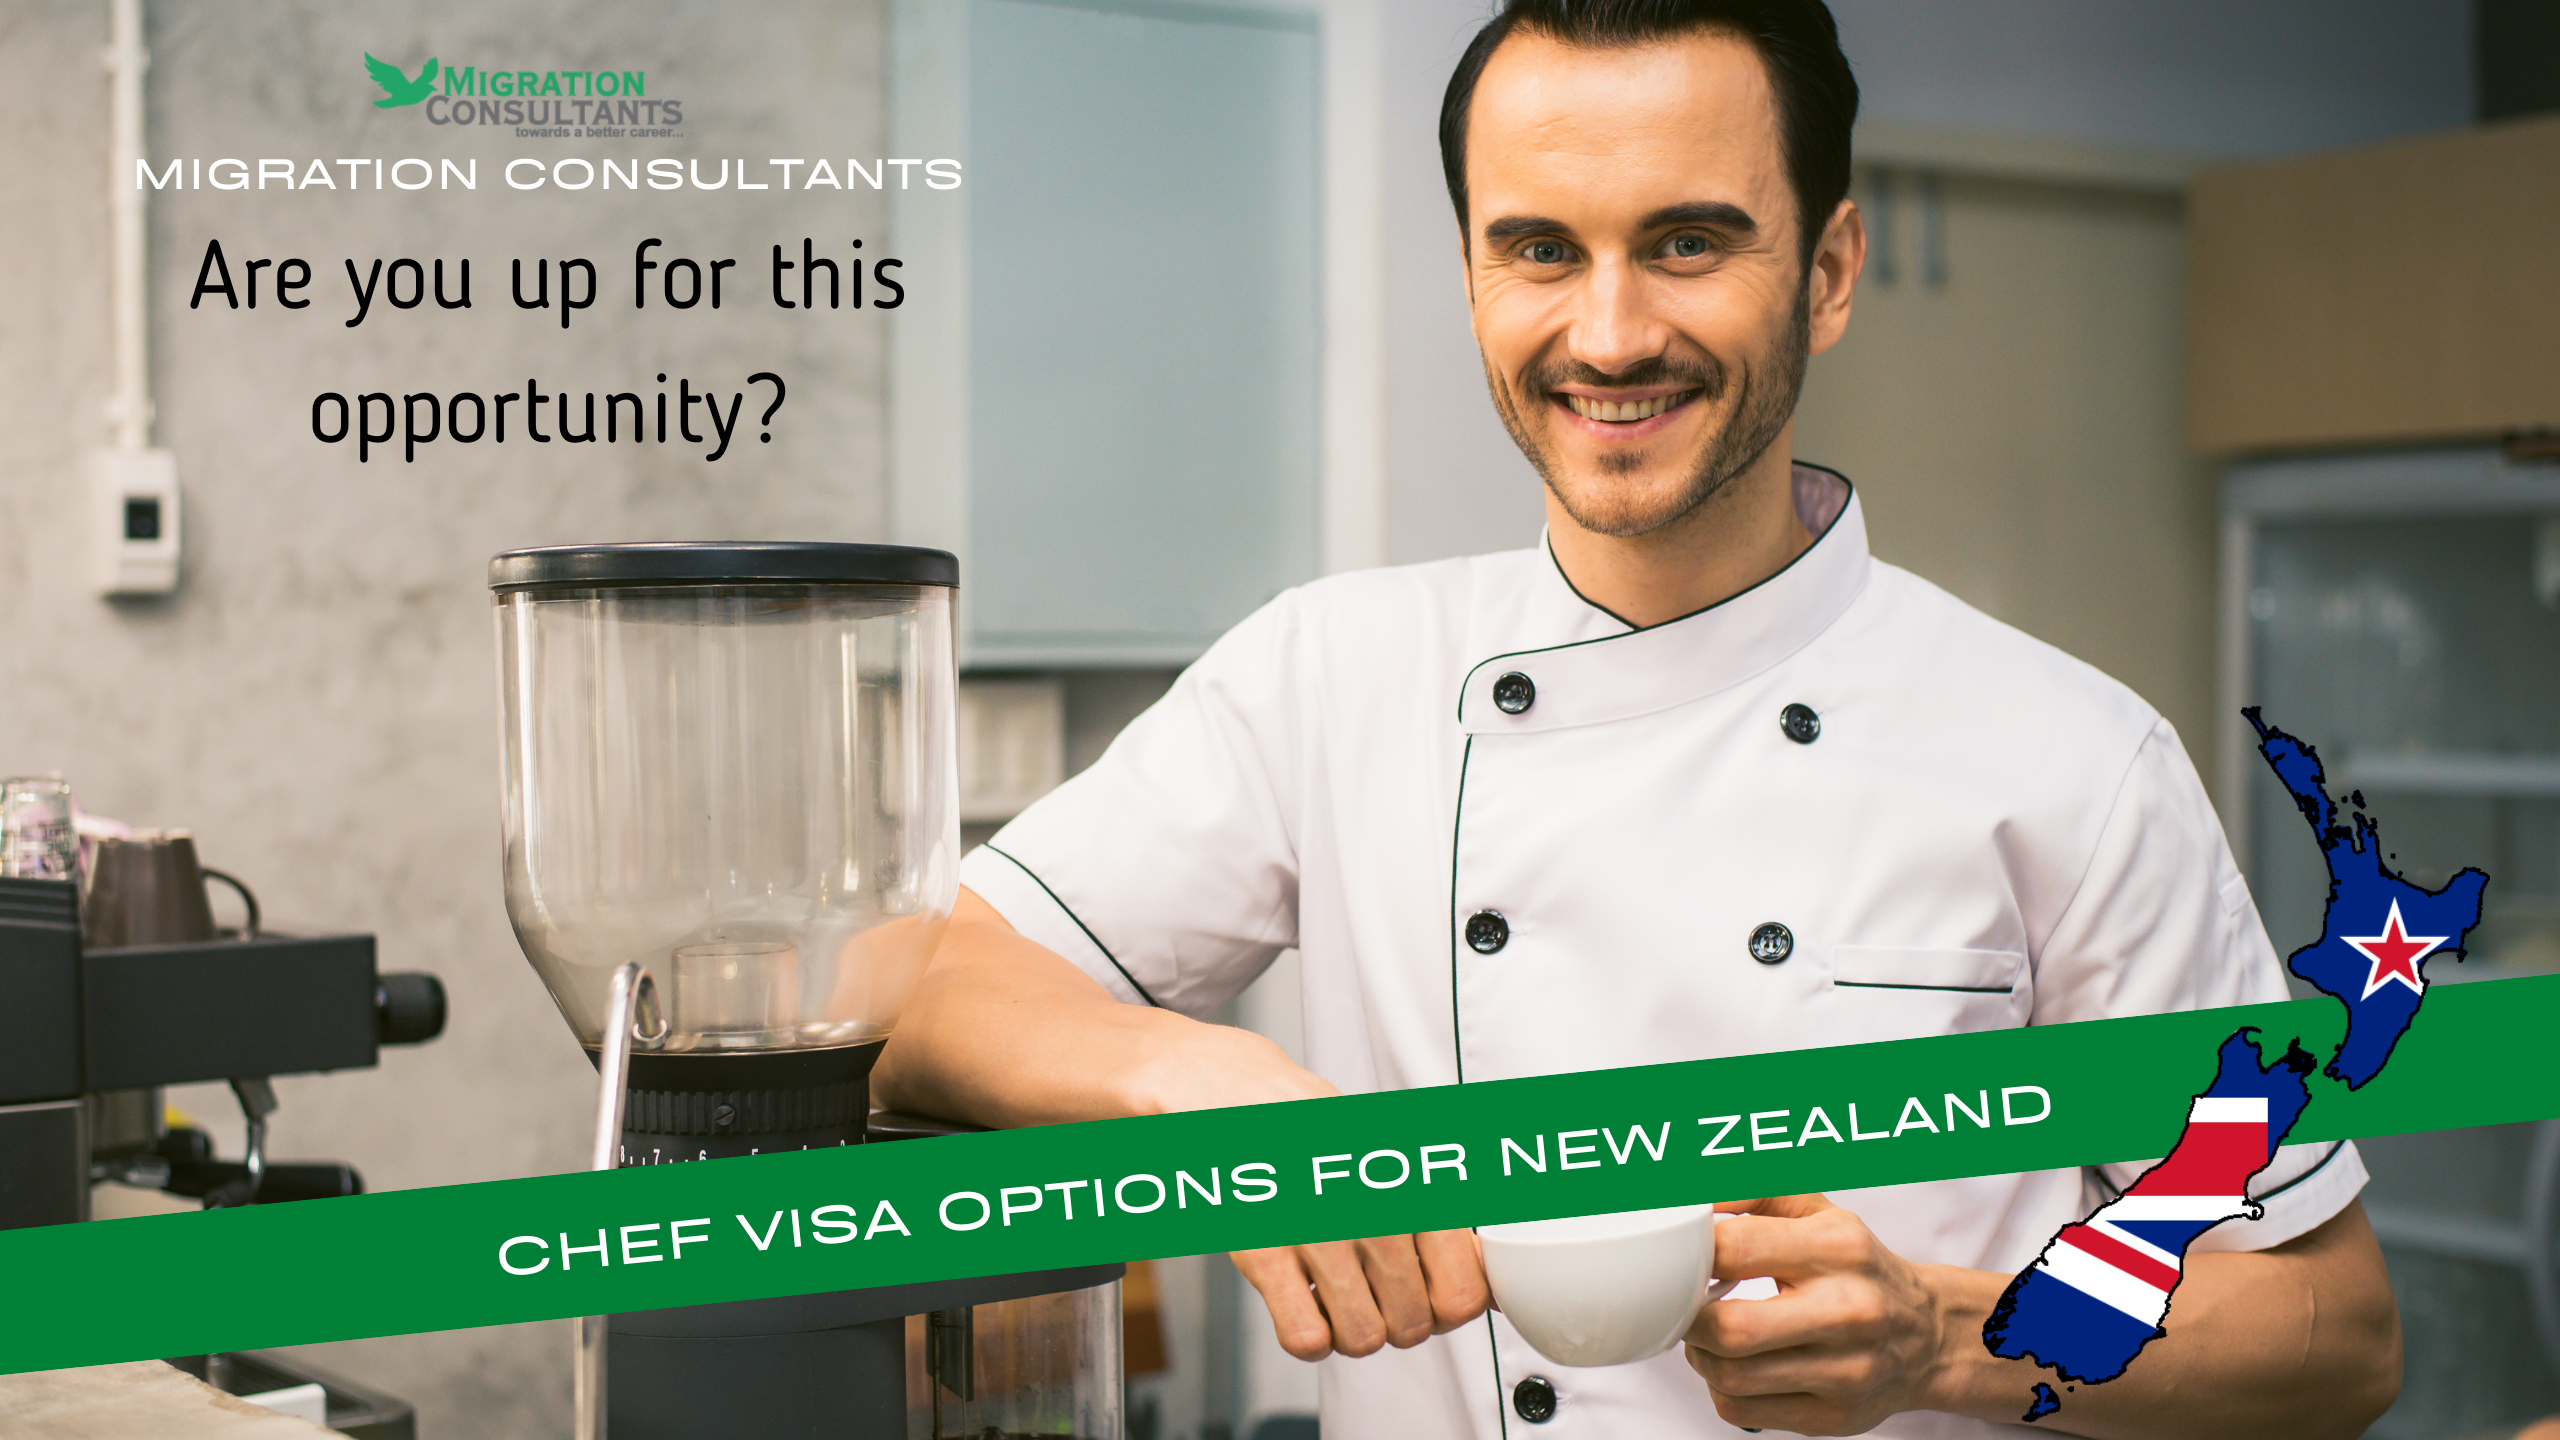 Are there any Chef Visa options for New Zealand available for candidates?